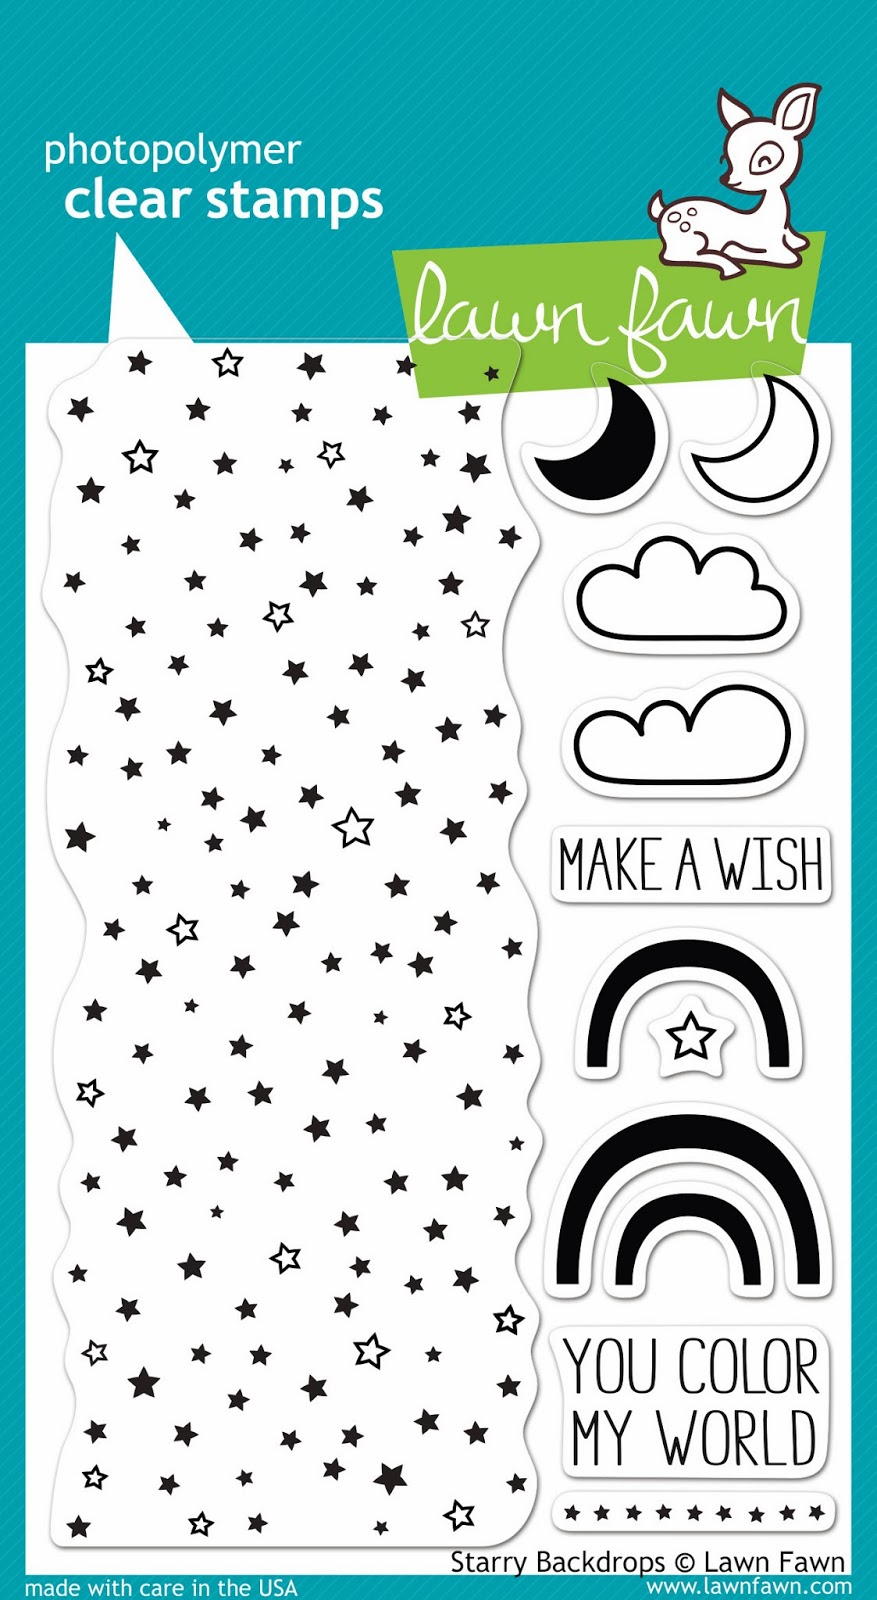 http://www.lawnfawn.com/collections/new-products/products/starry-backdrops